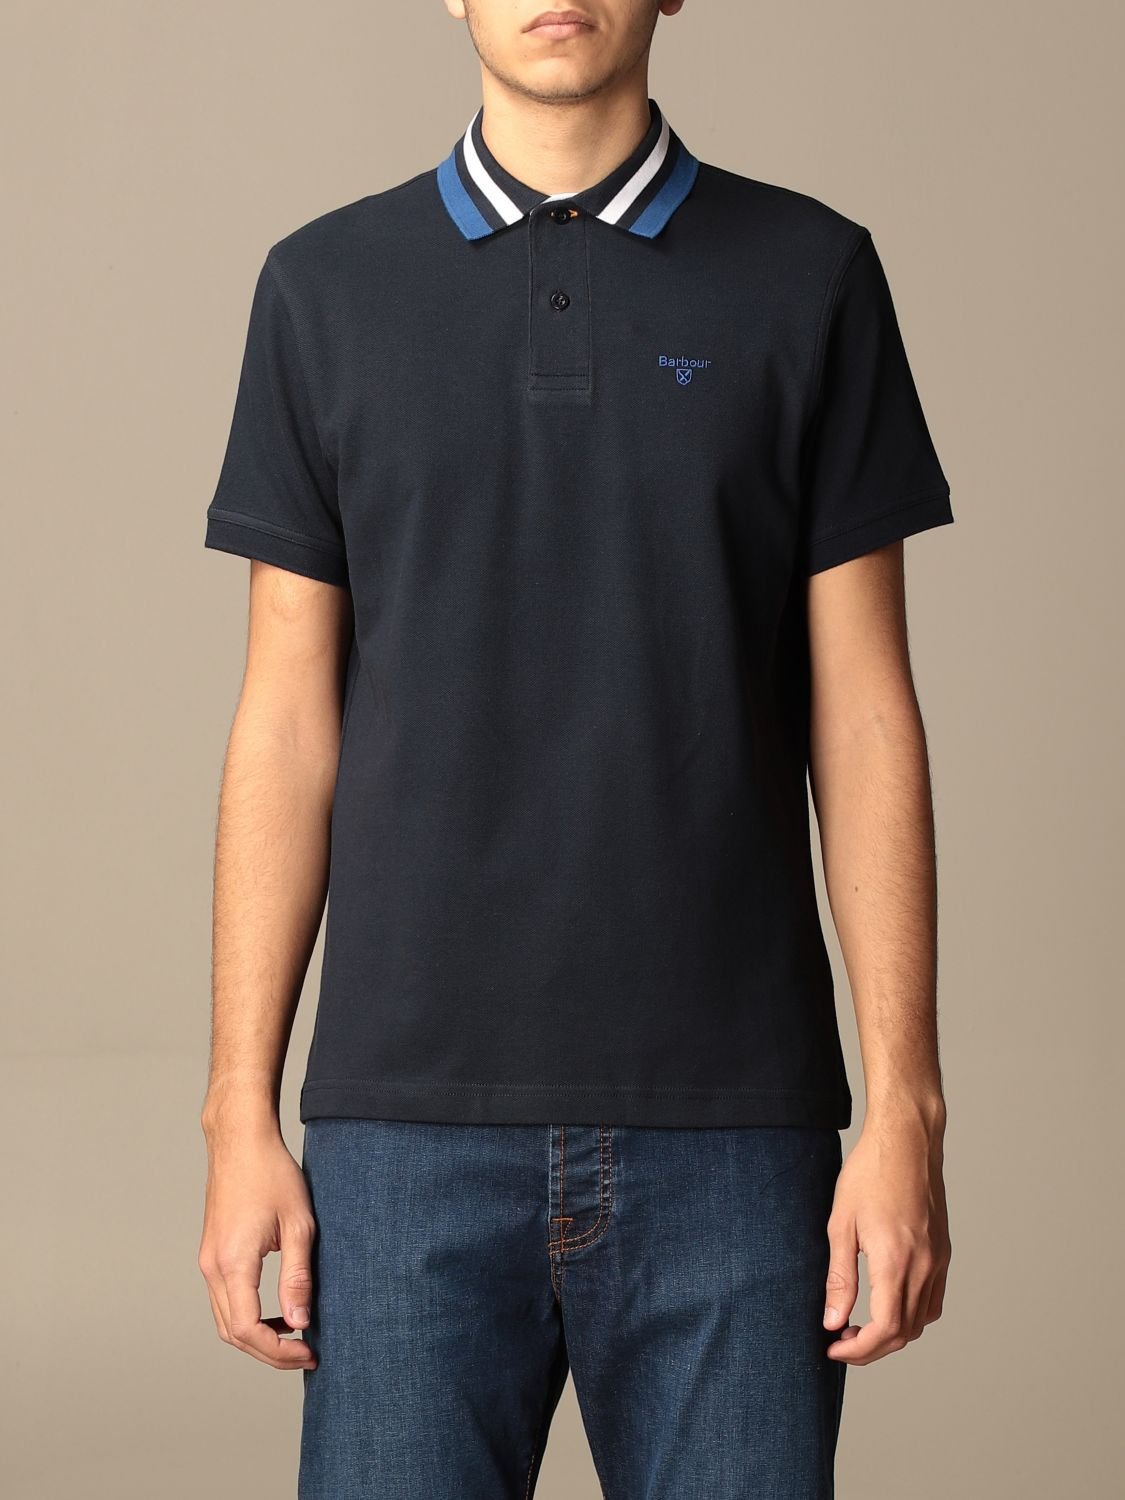 Polo Barbour: Pull homme Barbour bleu marine 1